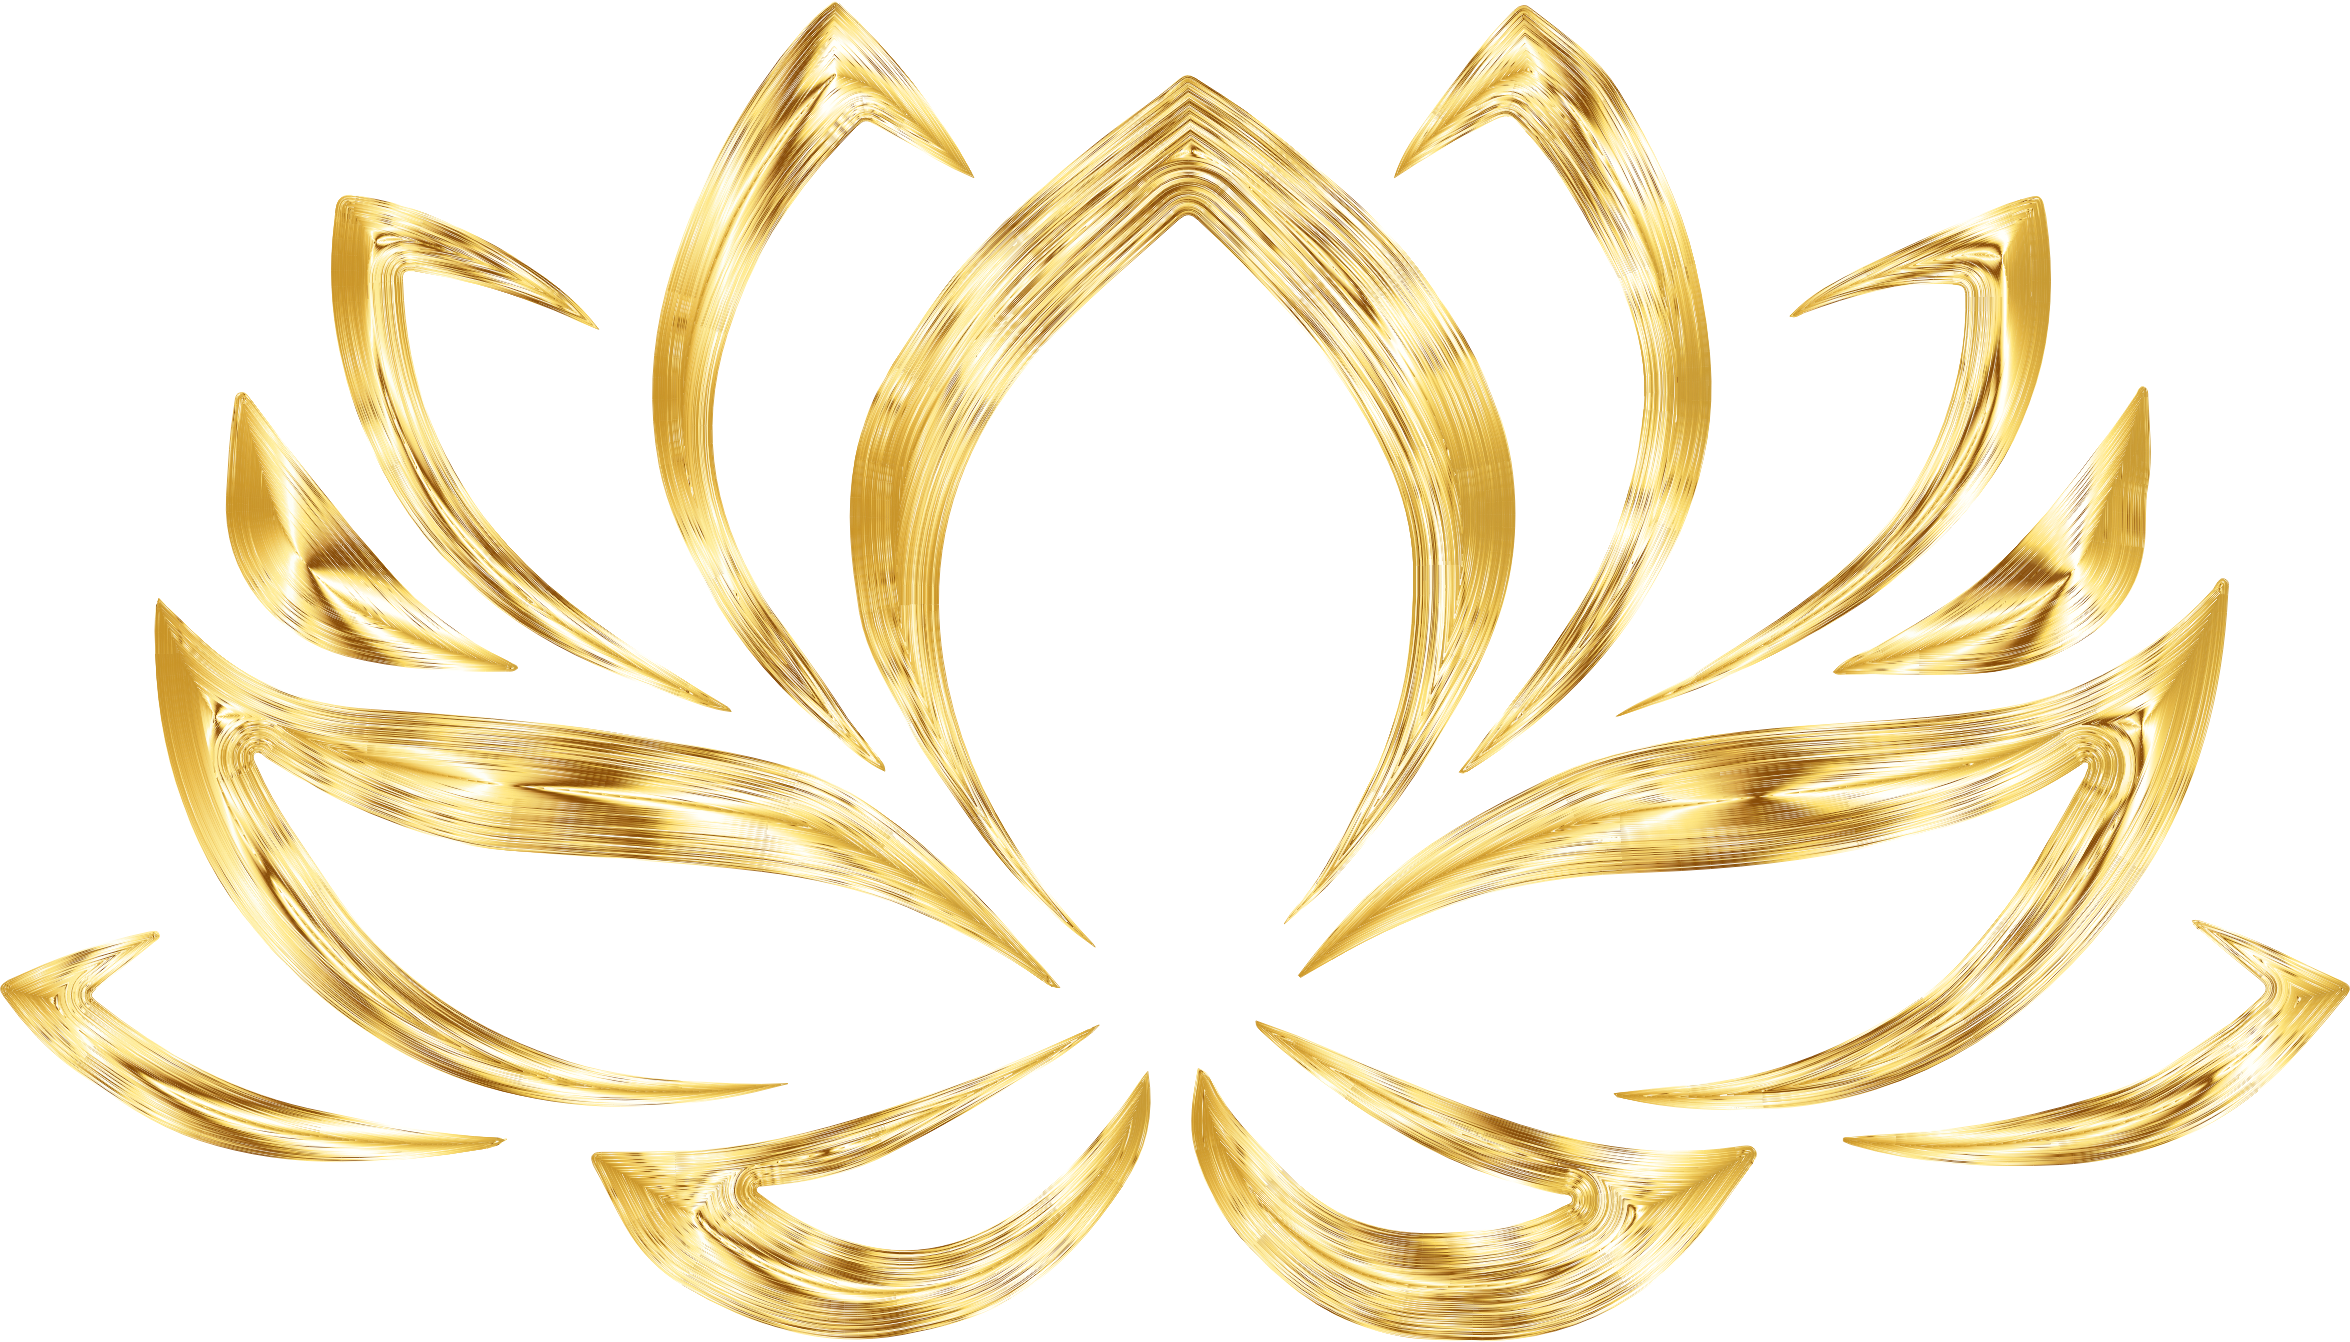 Lotus flower graphic png. Clipart aurumized no background